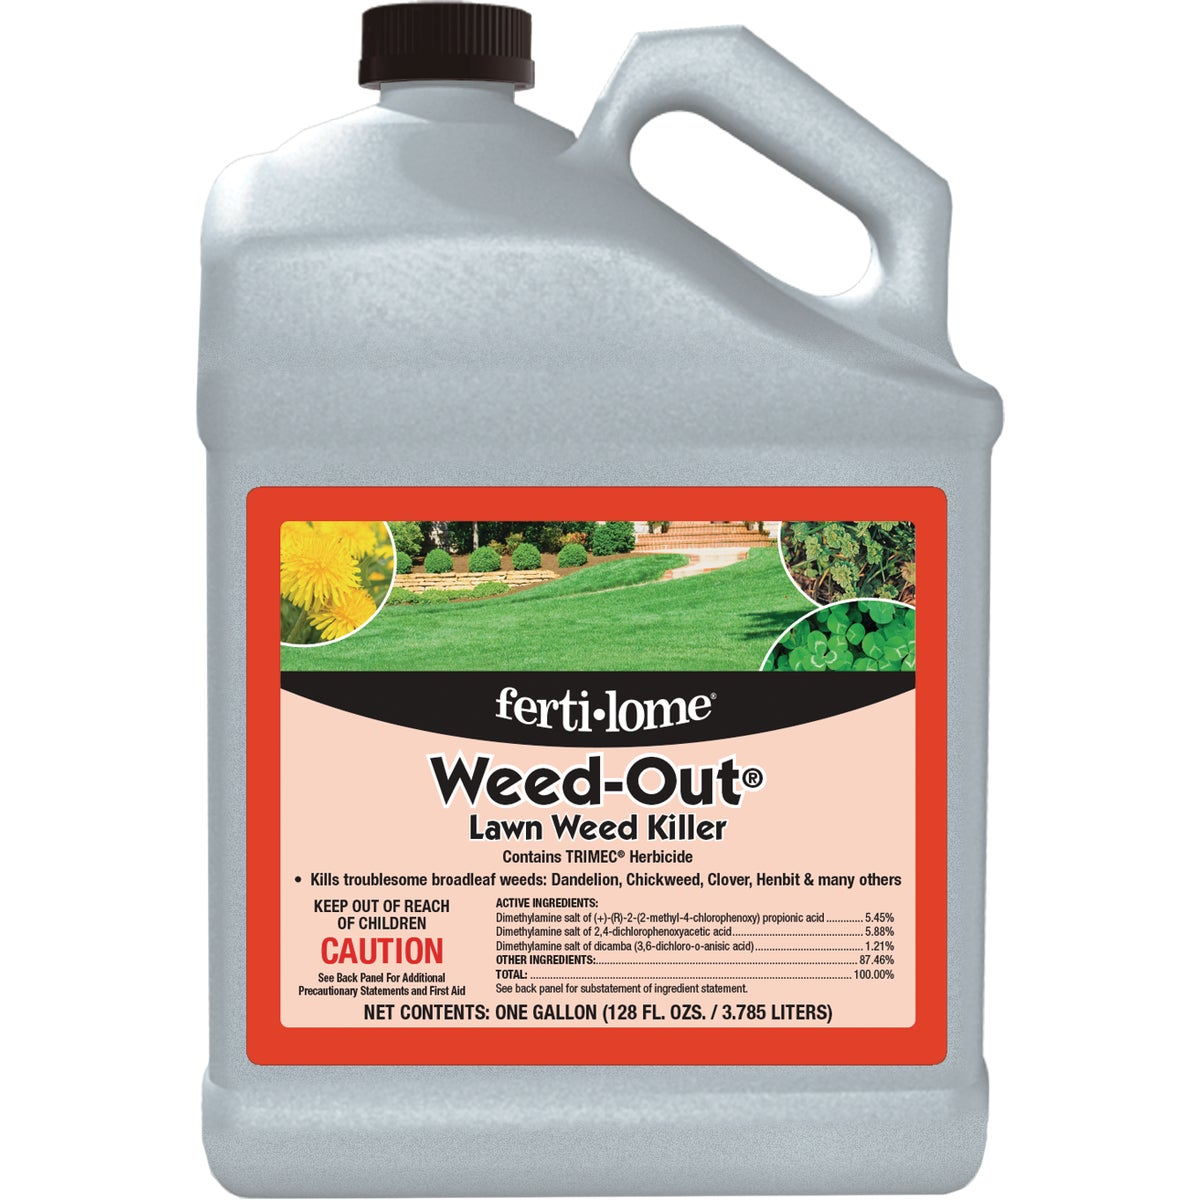 1GAL WEED OUT - 10519 by Vpg Fertilome